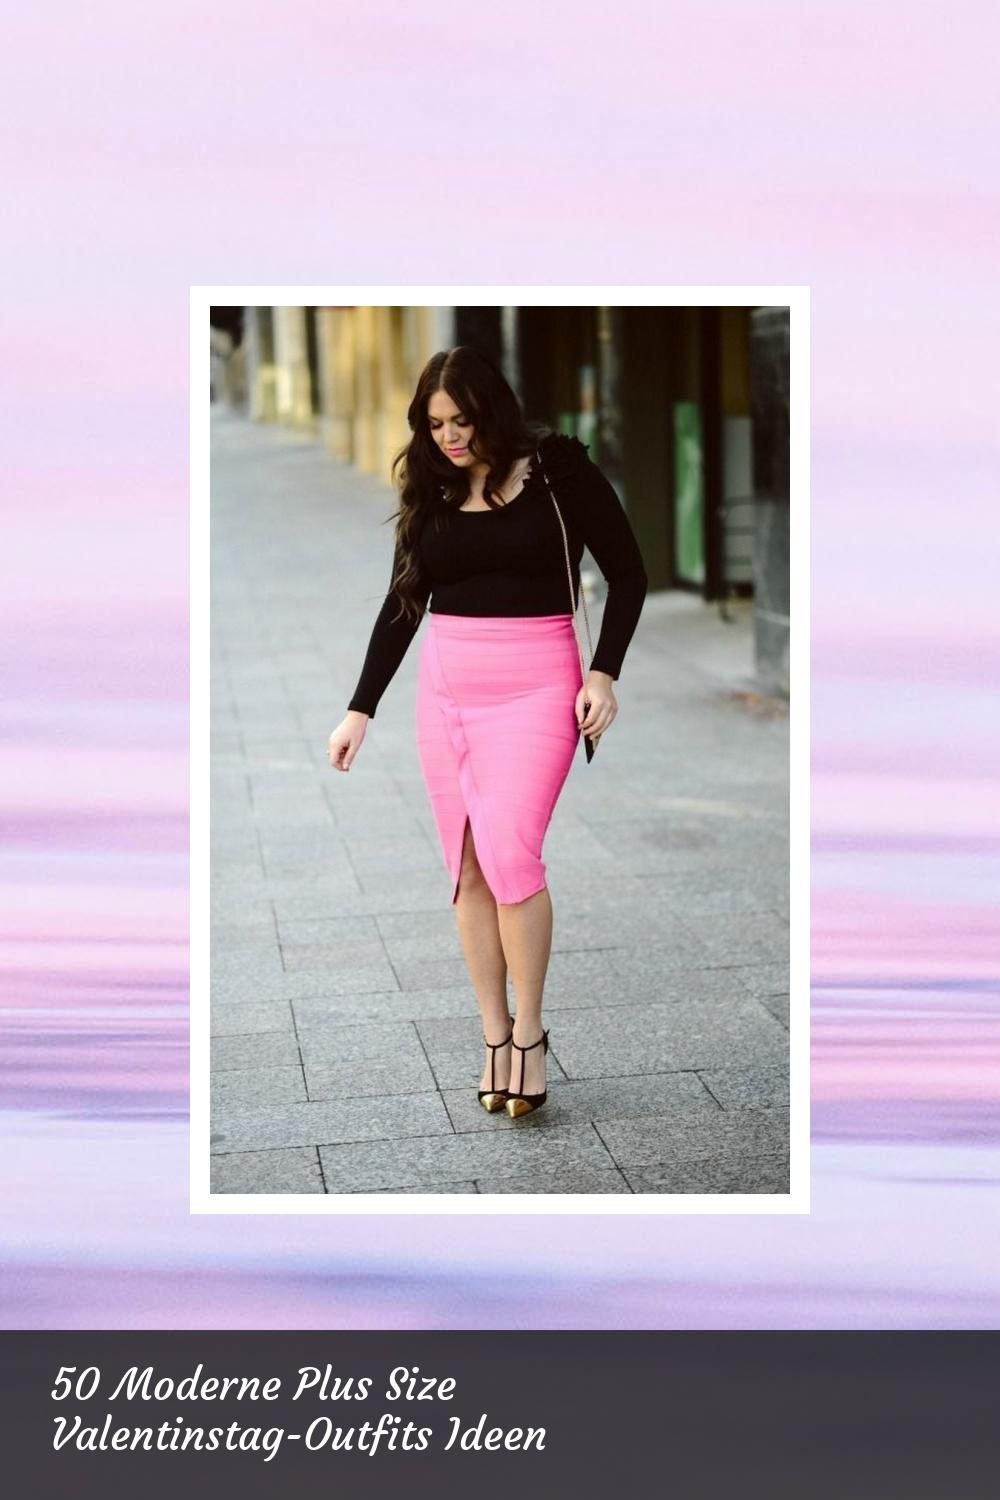 50 Moderne Plus Size Valentinstag-Outfits Ideen 19